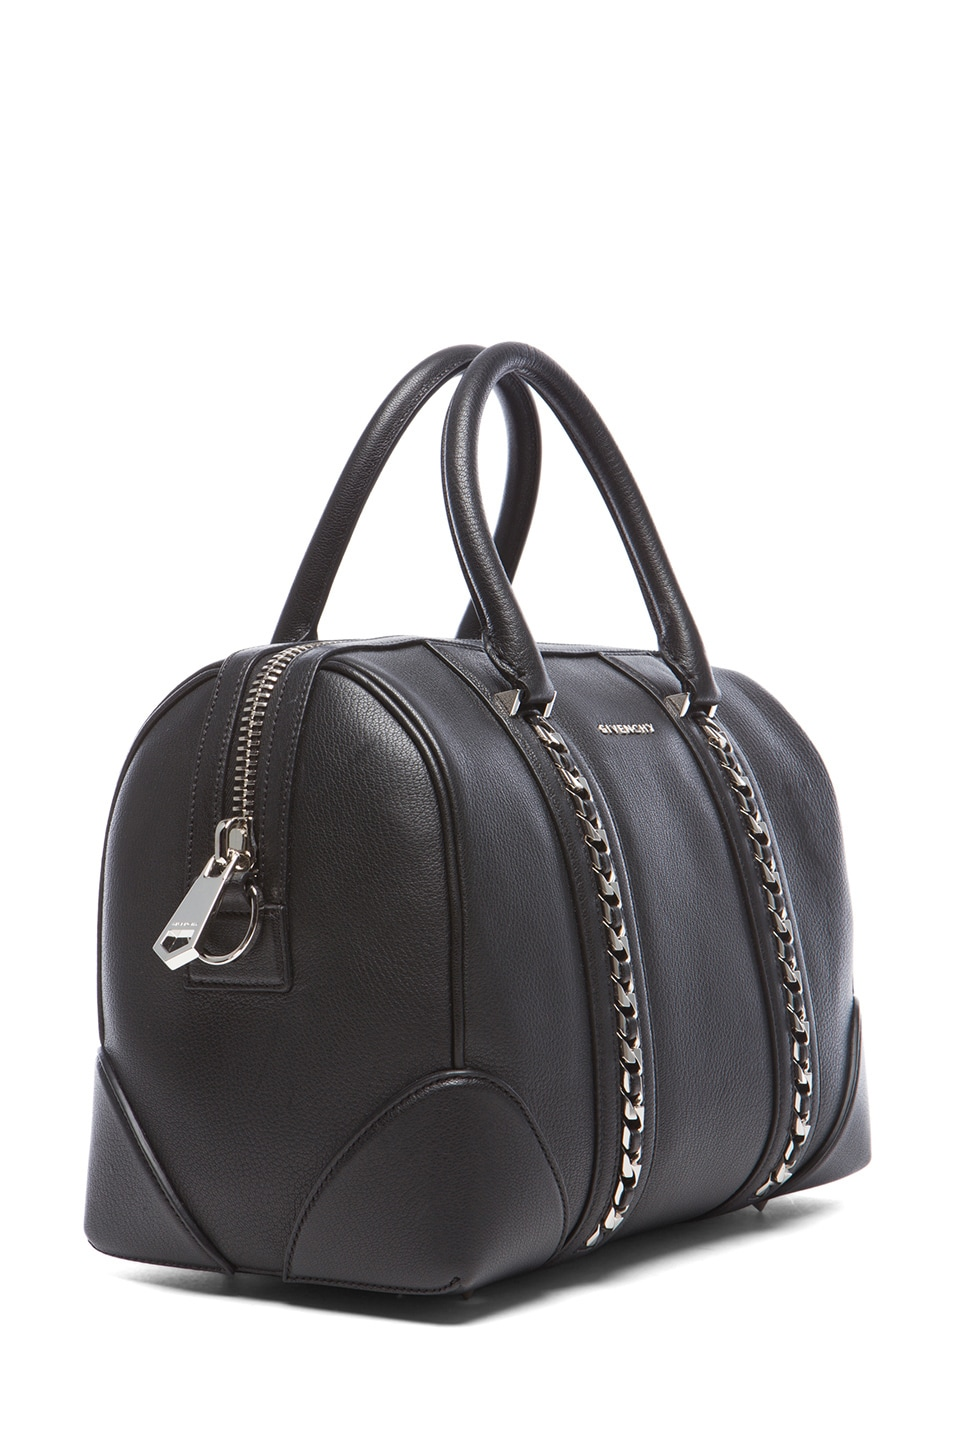 c059b3ce02ad Image 3 of Givenchy Chain Animation Medium Lucrezia in Black